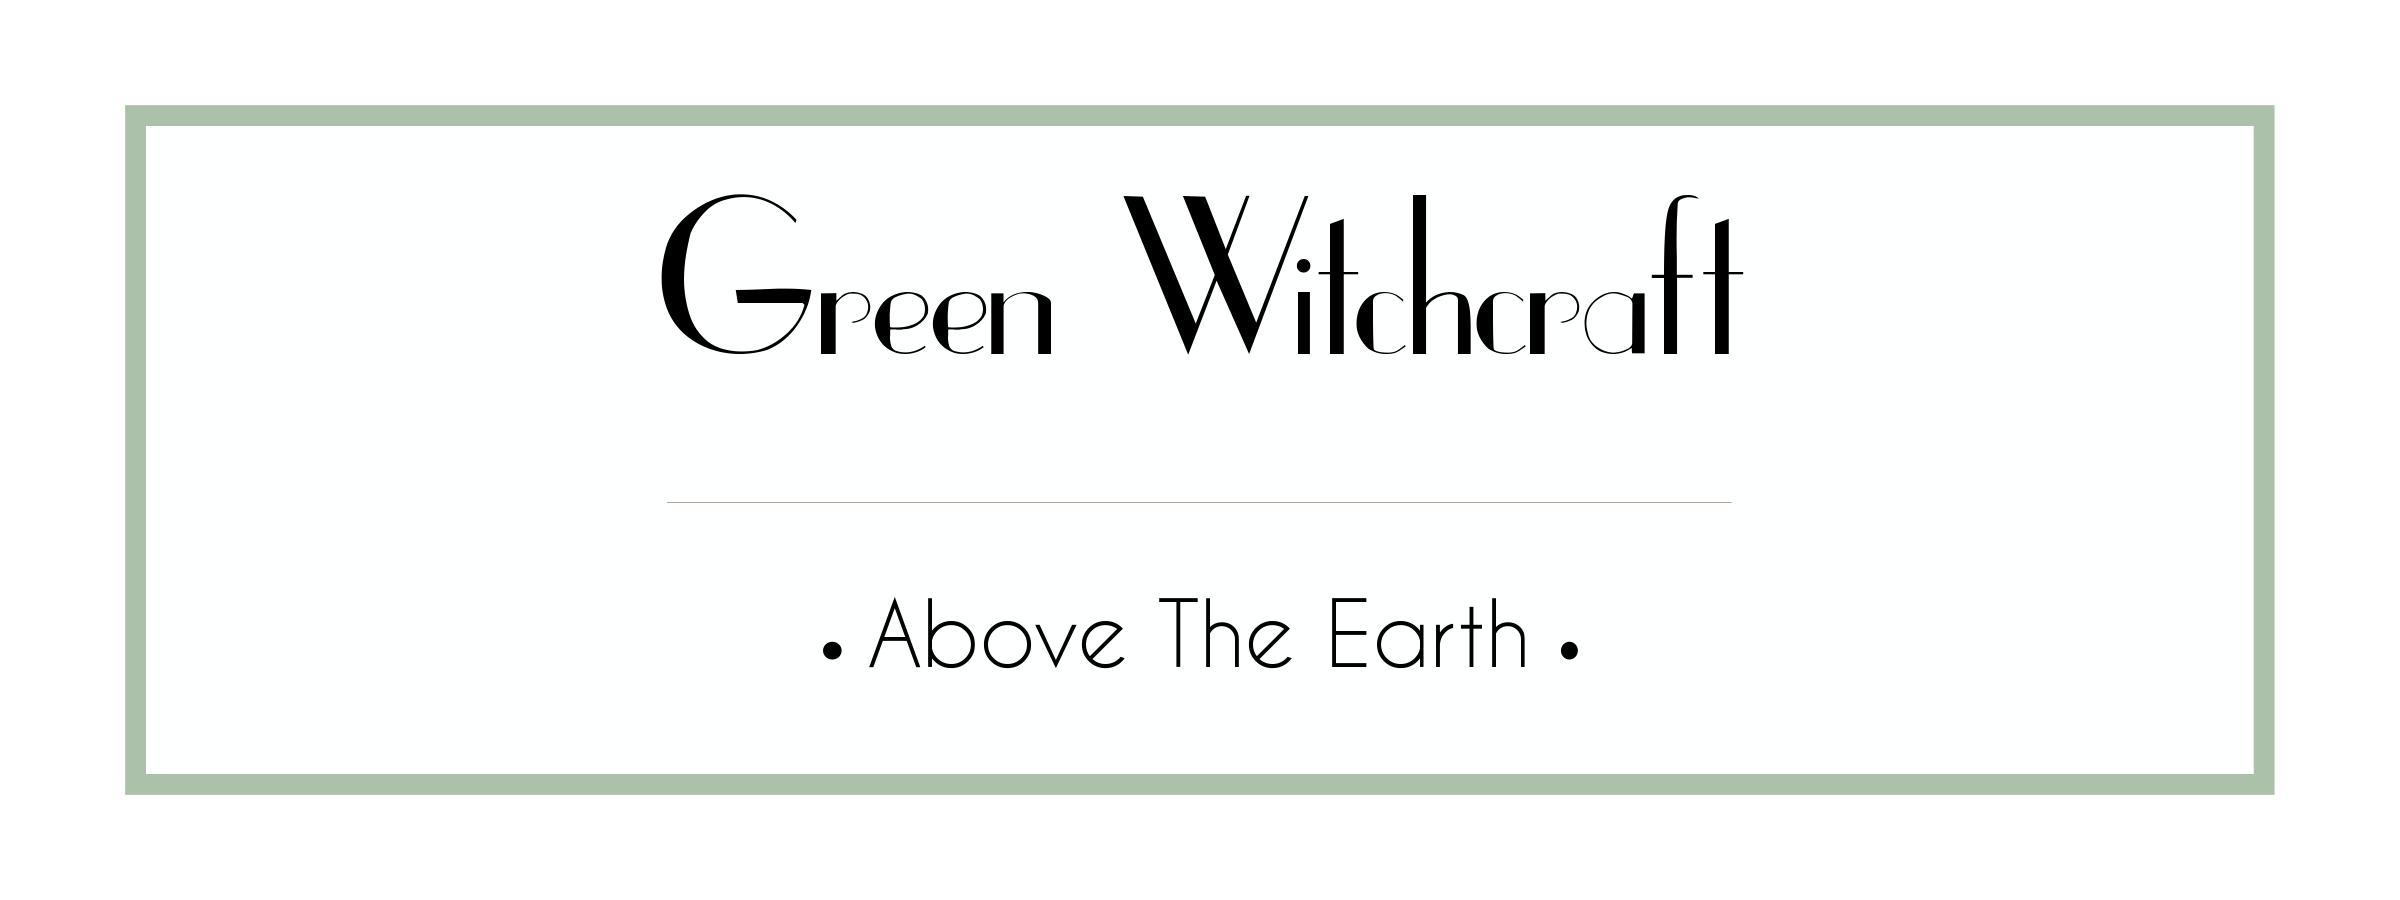 Green Witchcraft Course - Above The Earth